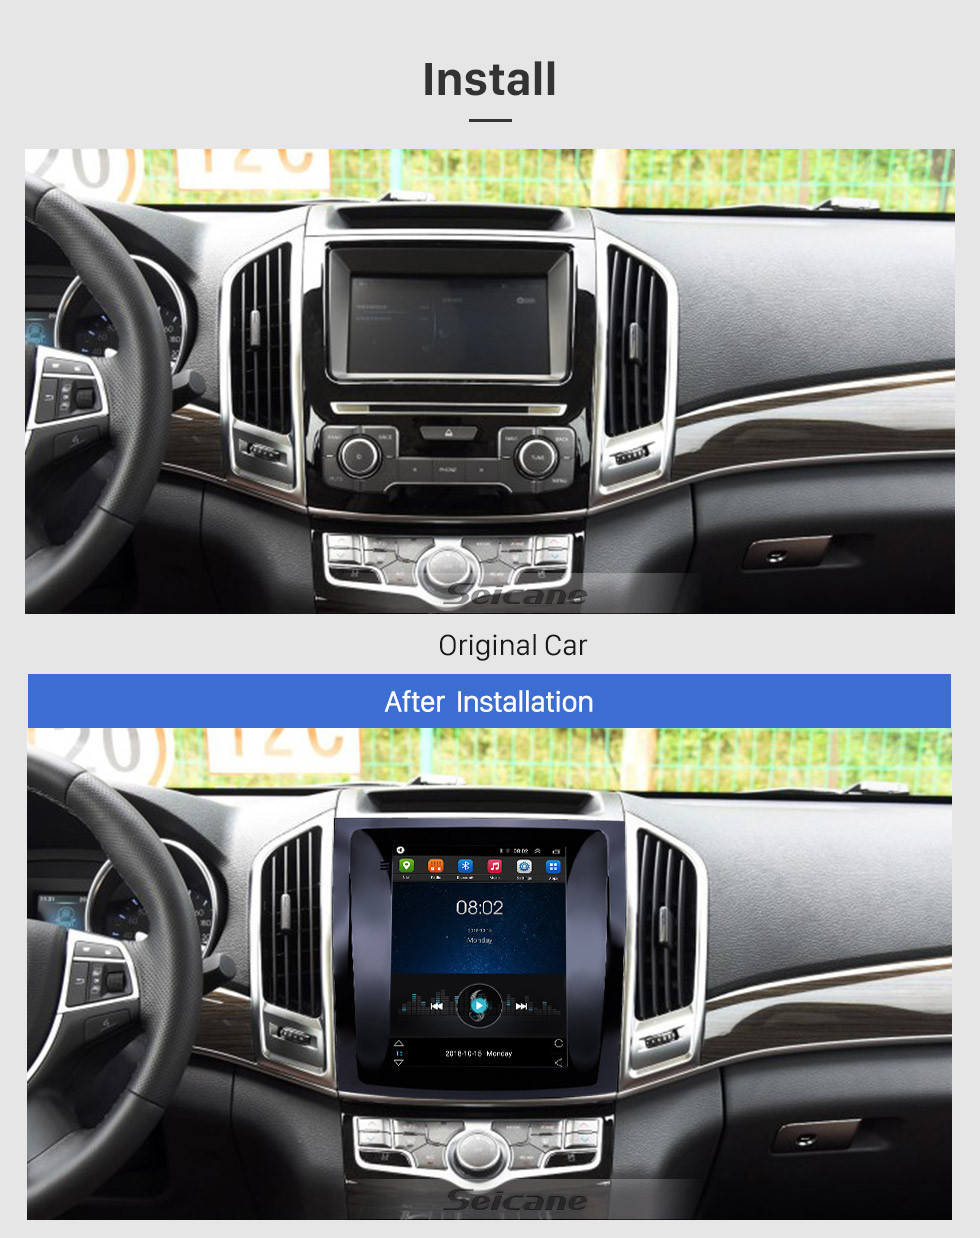 Seicane OEM 9.7 inch Android 9.1 2015-2017 Great Wall Haval H9 GPS Navigation Radio with Touchscreen Bluetooth WIFI support TPMS Carplay DAB+